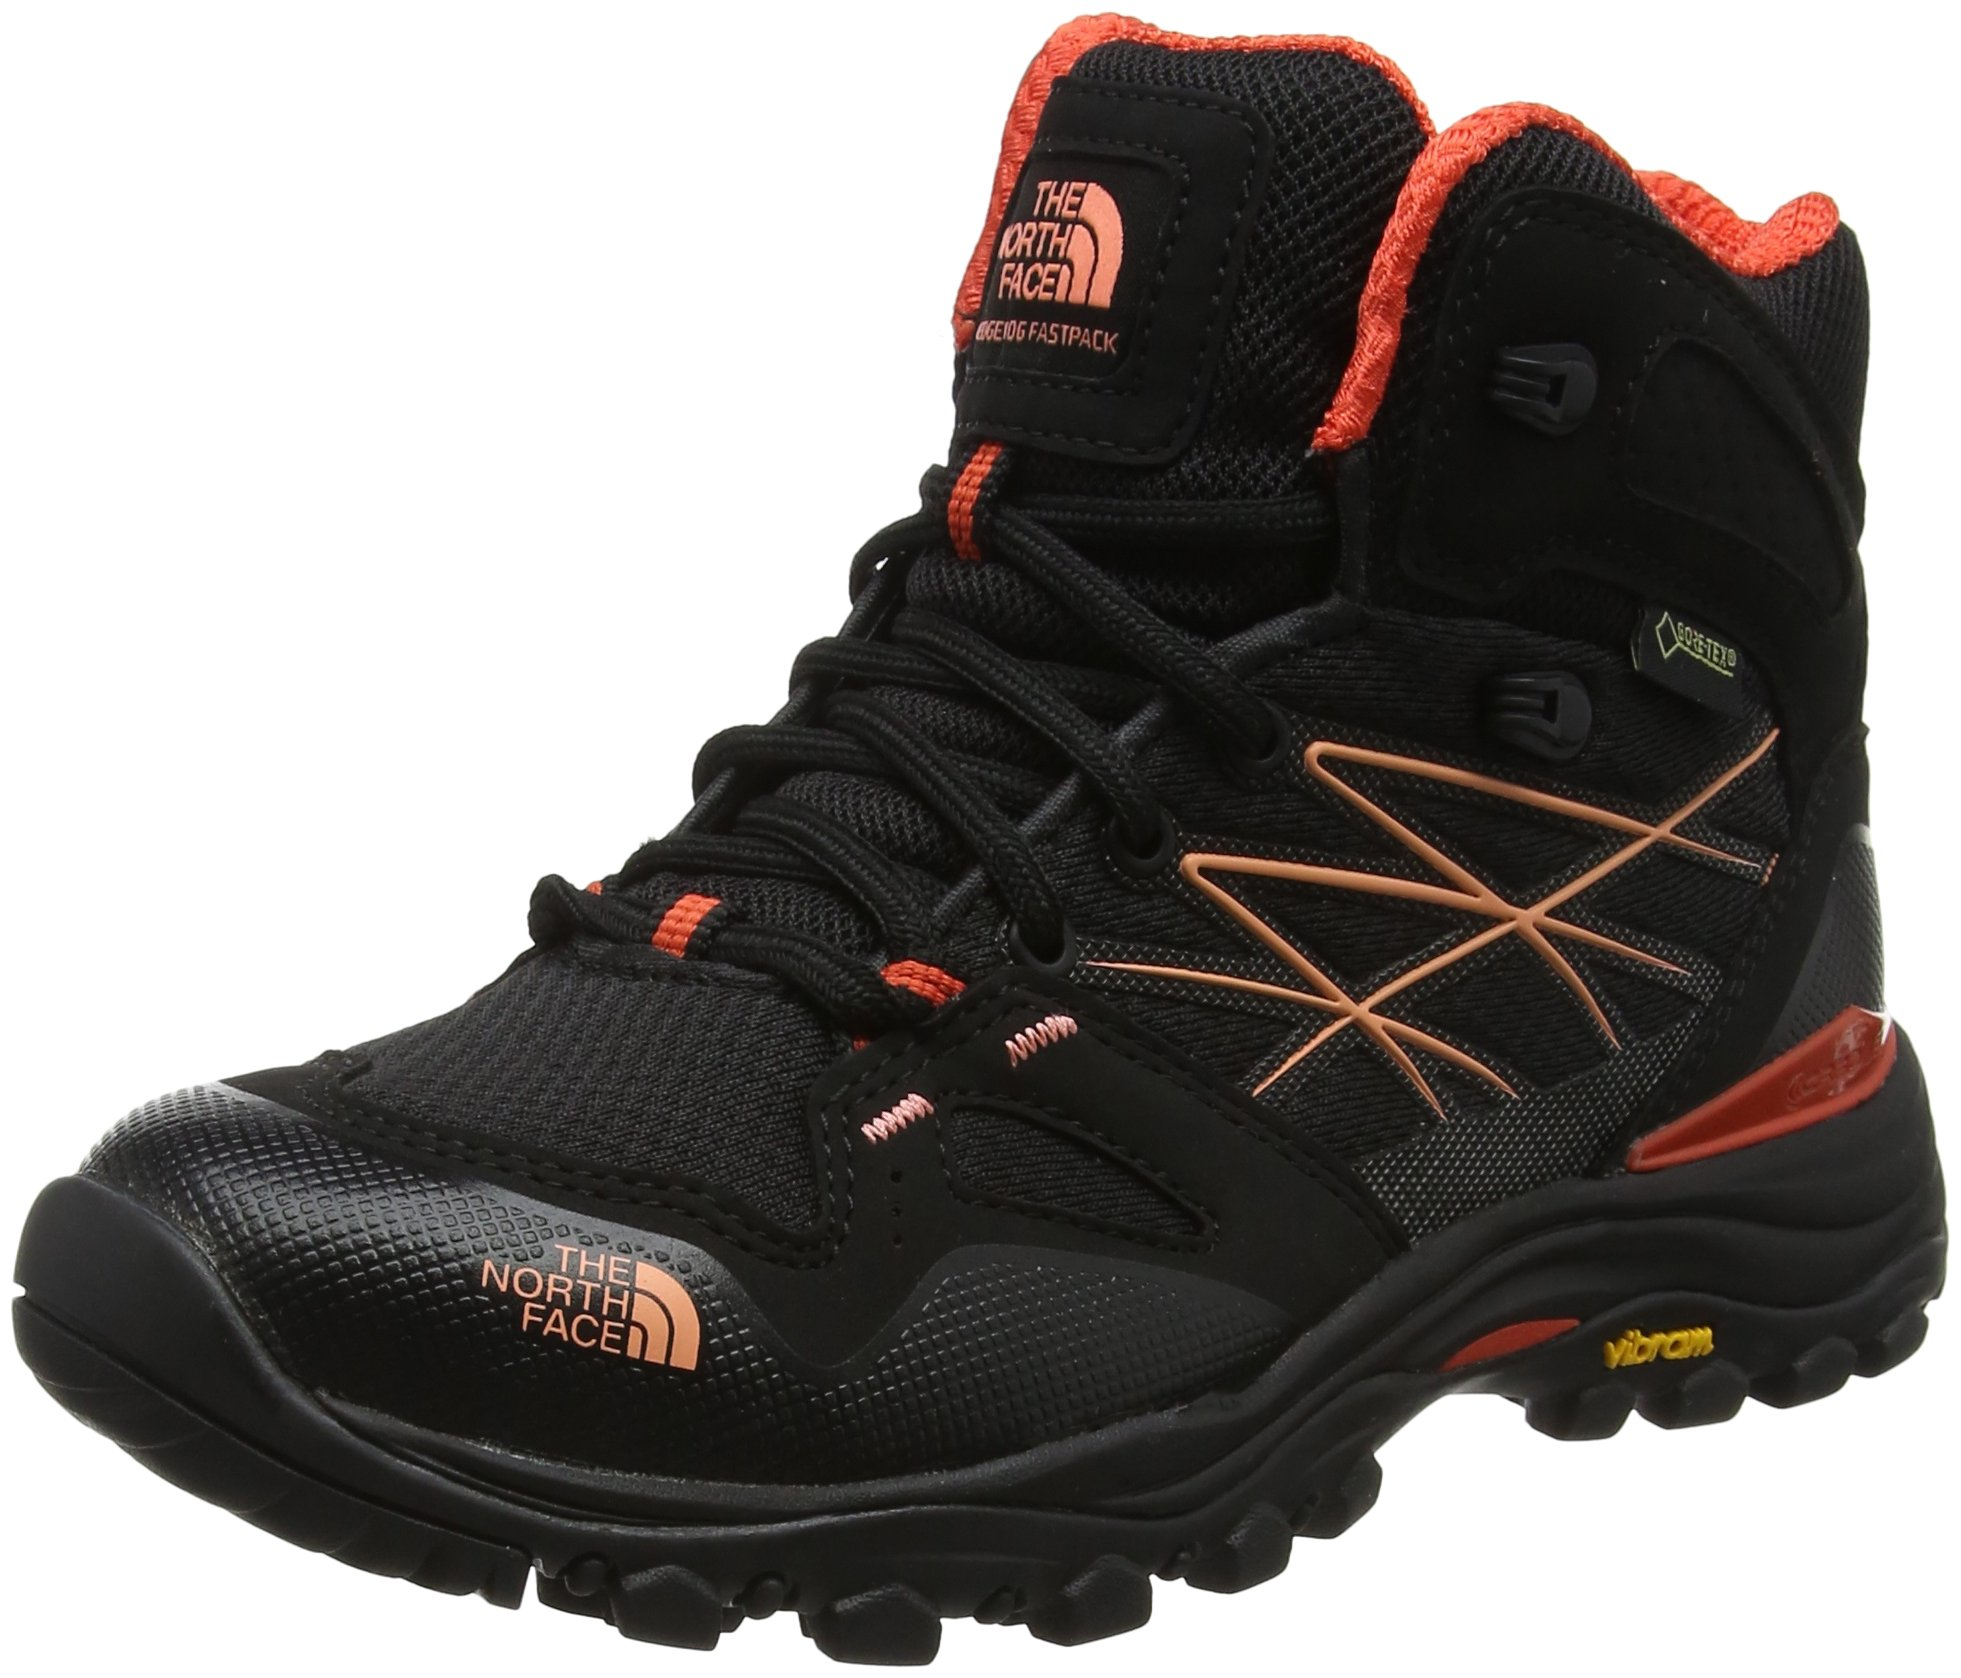 81cPQu%2B2MUL - THE NORTH FACE Women's Hedgehog Fastpack Mid GTX High Rise Hiking Boots